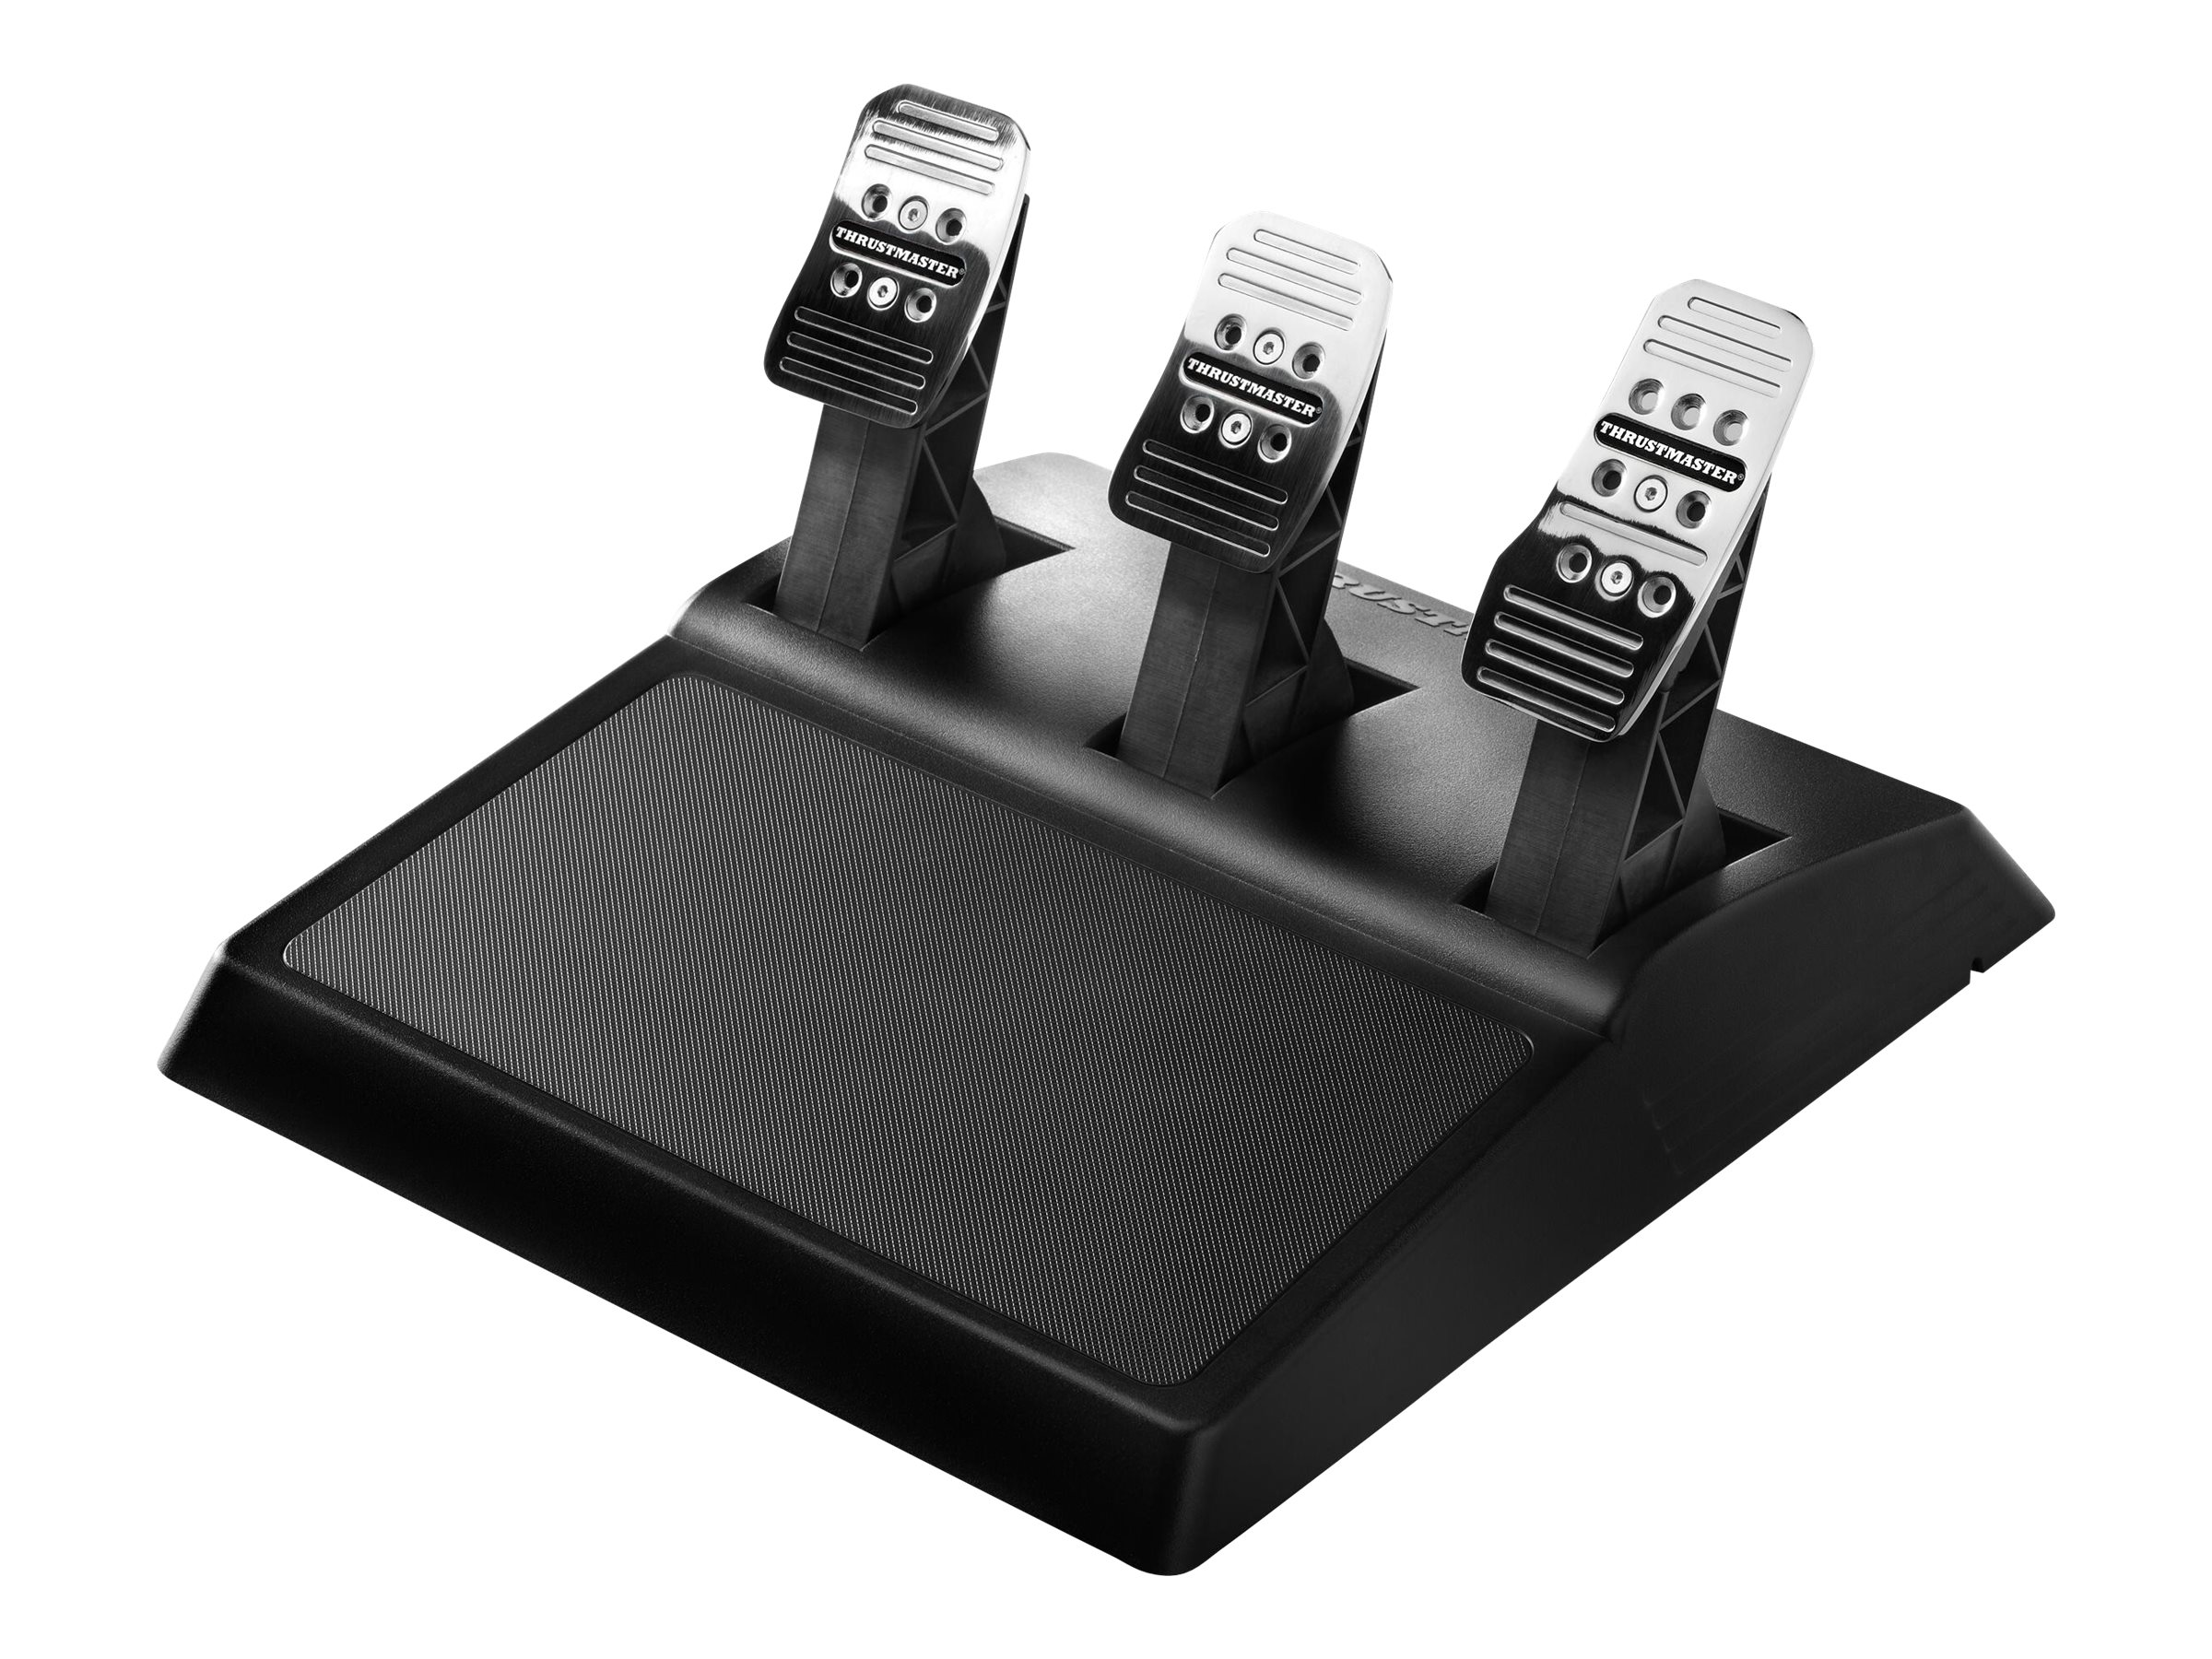 Thrustmaster Thrustmaster T3PA and T300 Pedal Set Add-on, 4060056, 17798709, Computer Gaming Accessories